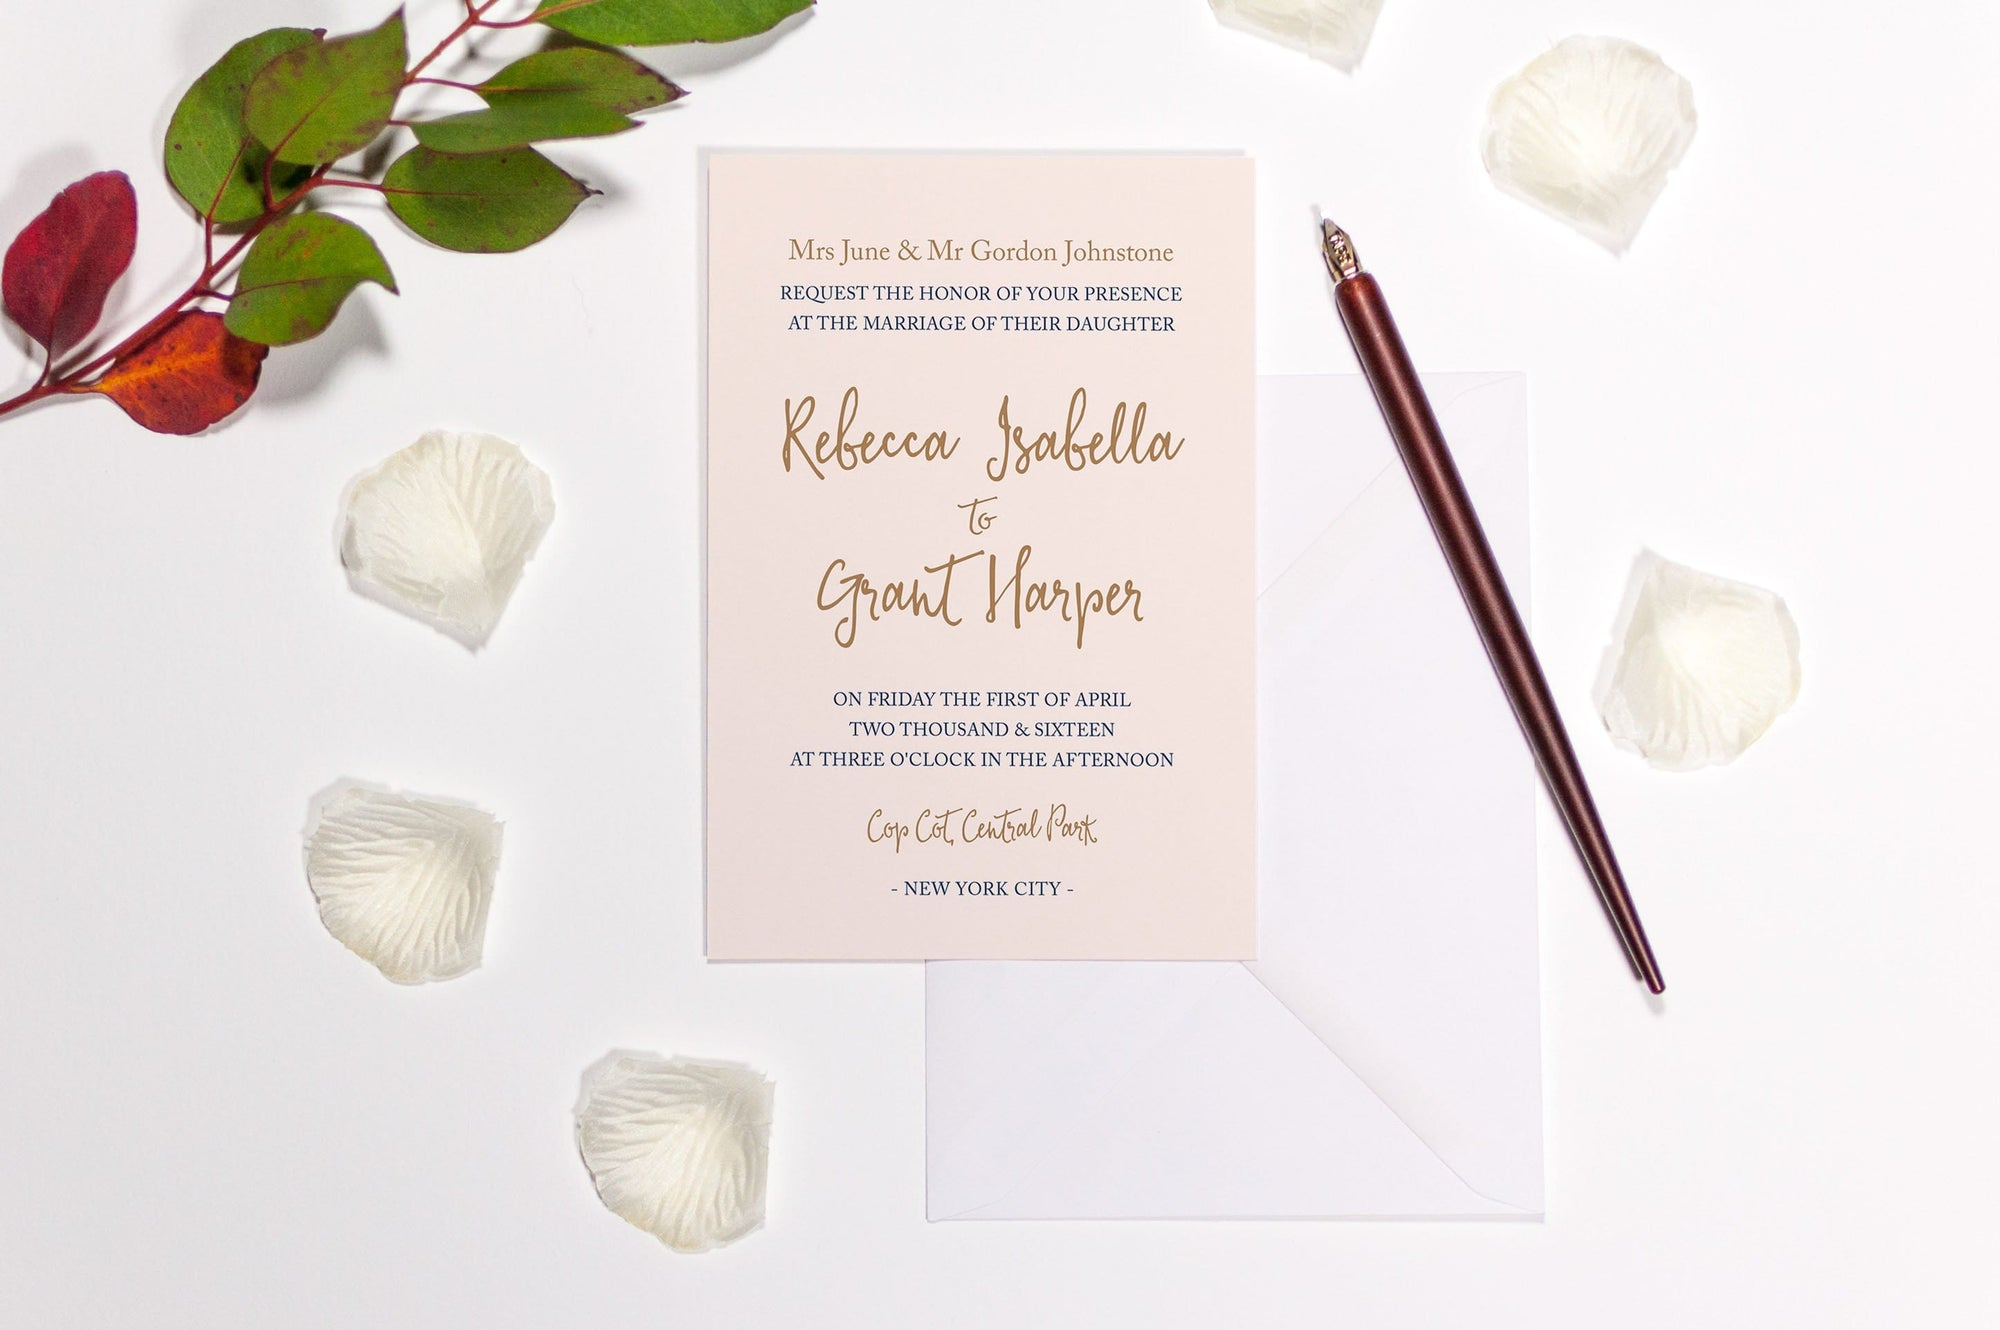 luxuryweddinginvitationsbycombossa HD Printed Wedding Invitations Calligraphy Wedding Invitation, HD Digital Print